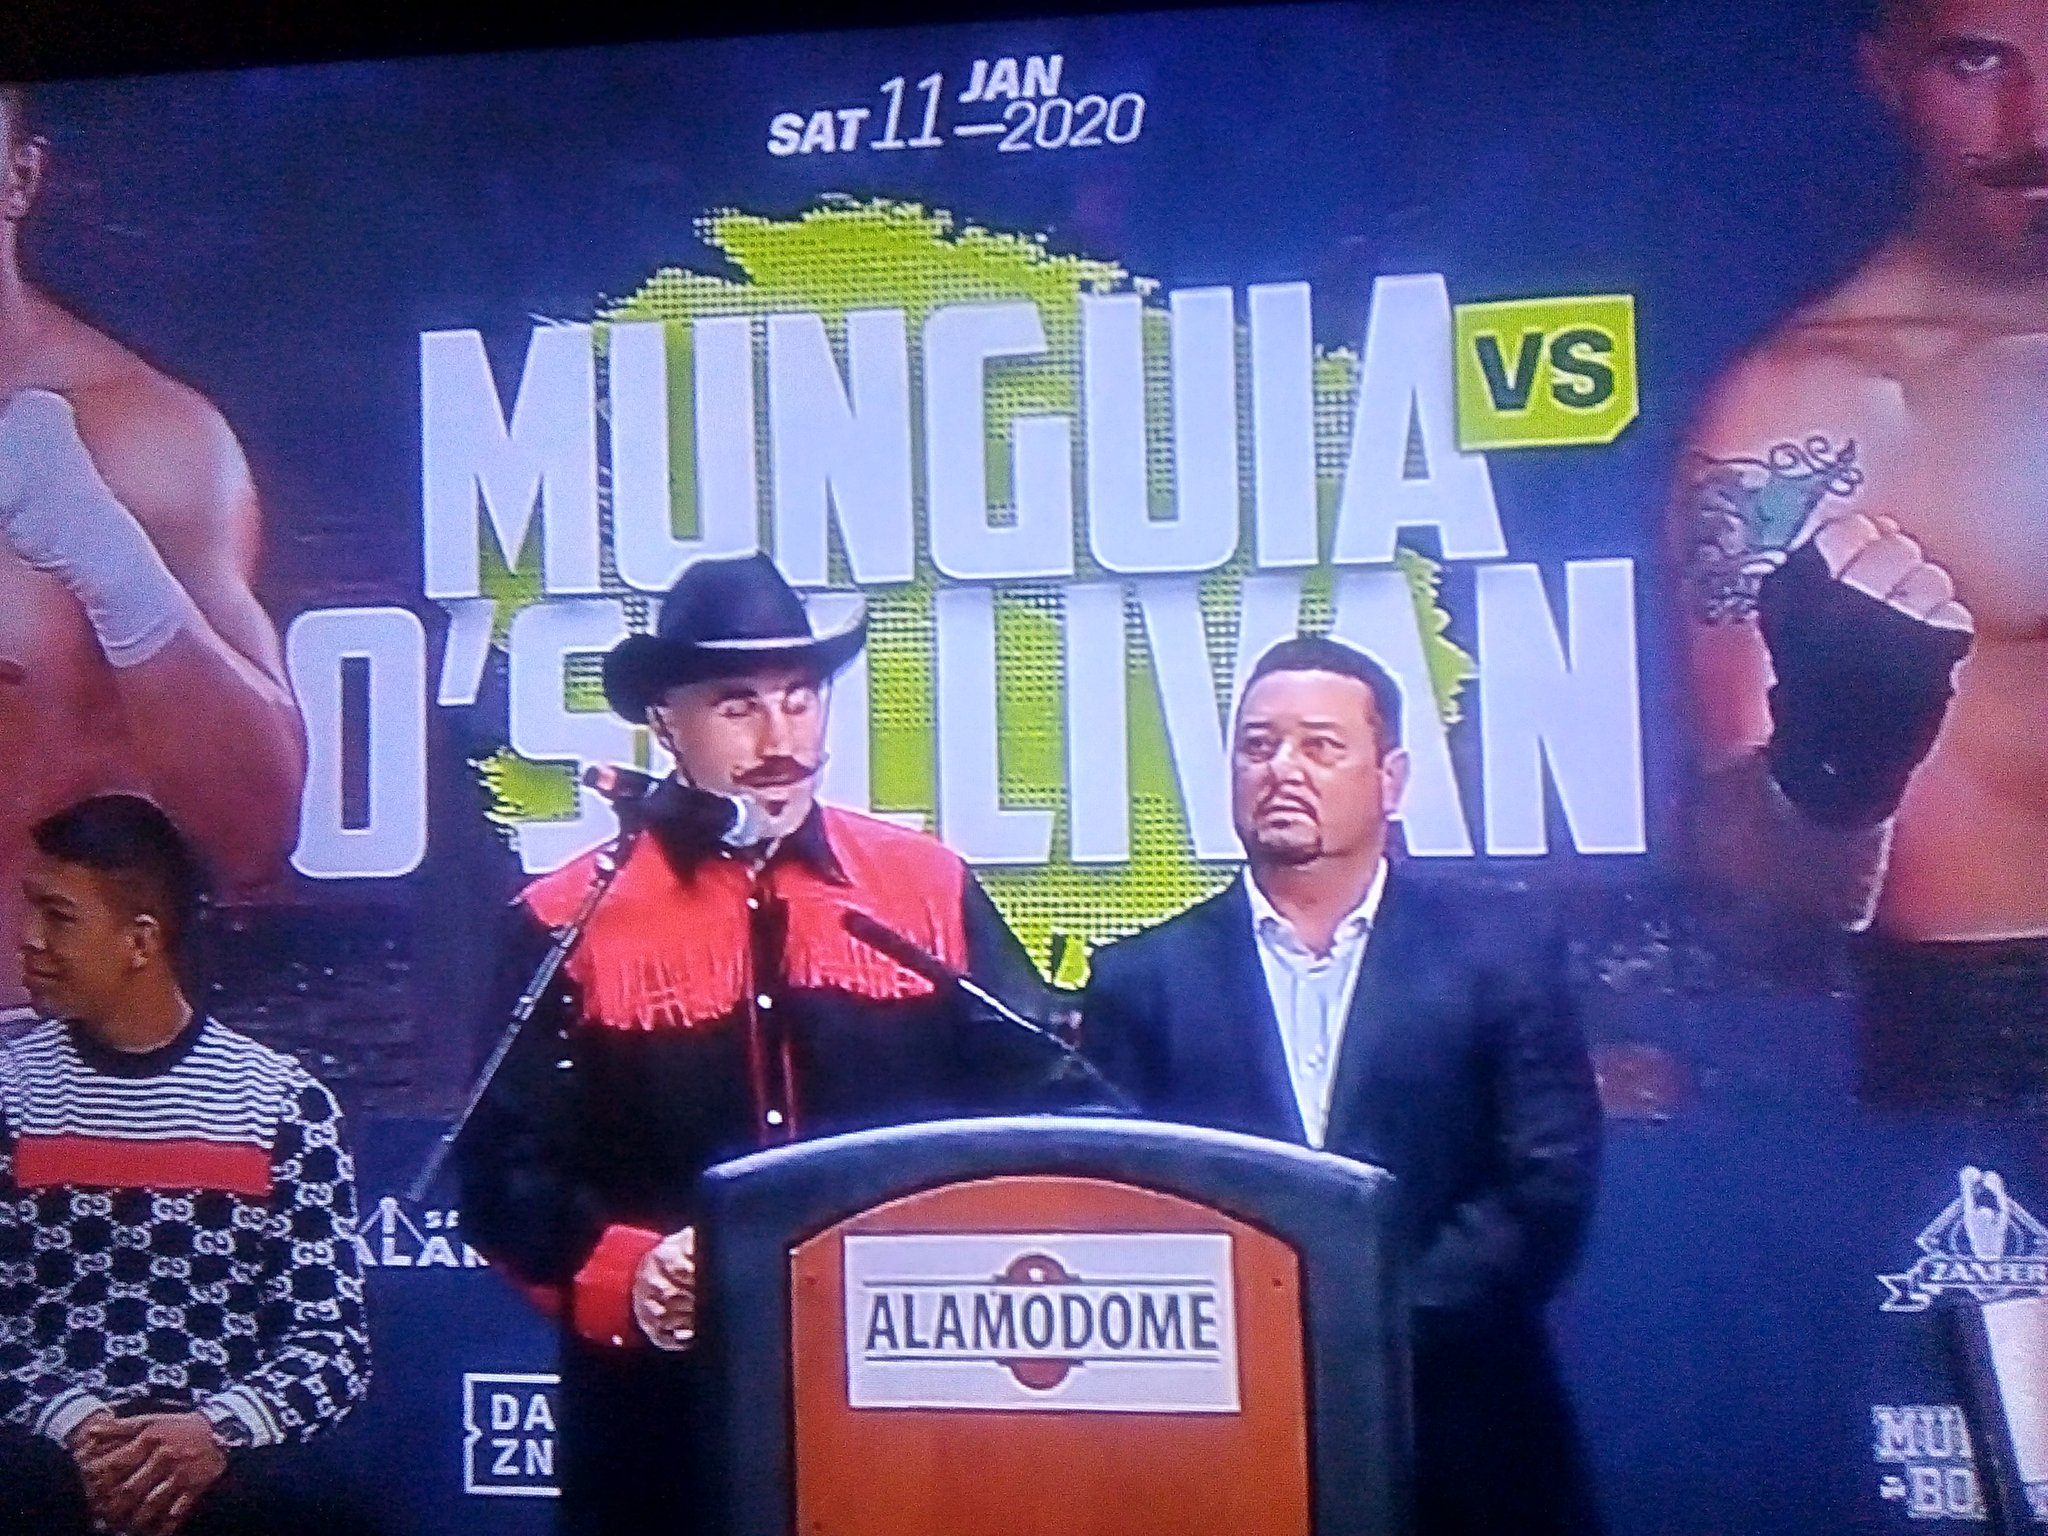 Gary O'Sullivan Vs Mungula watch it here